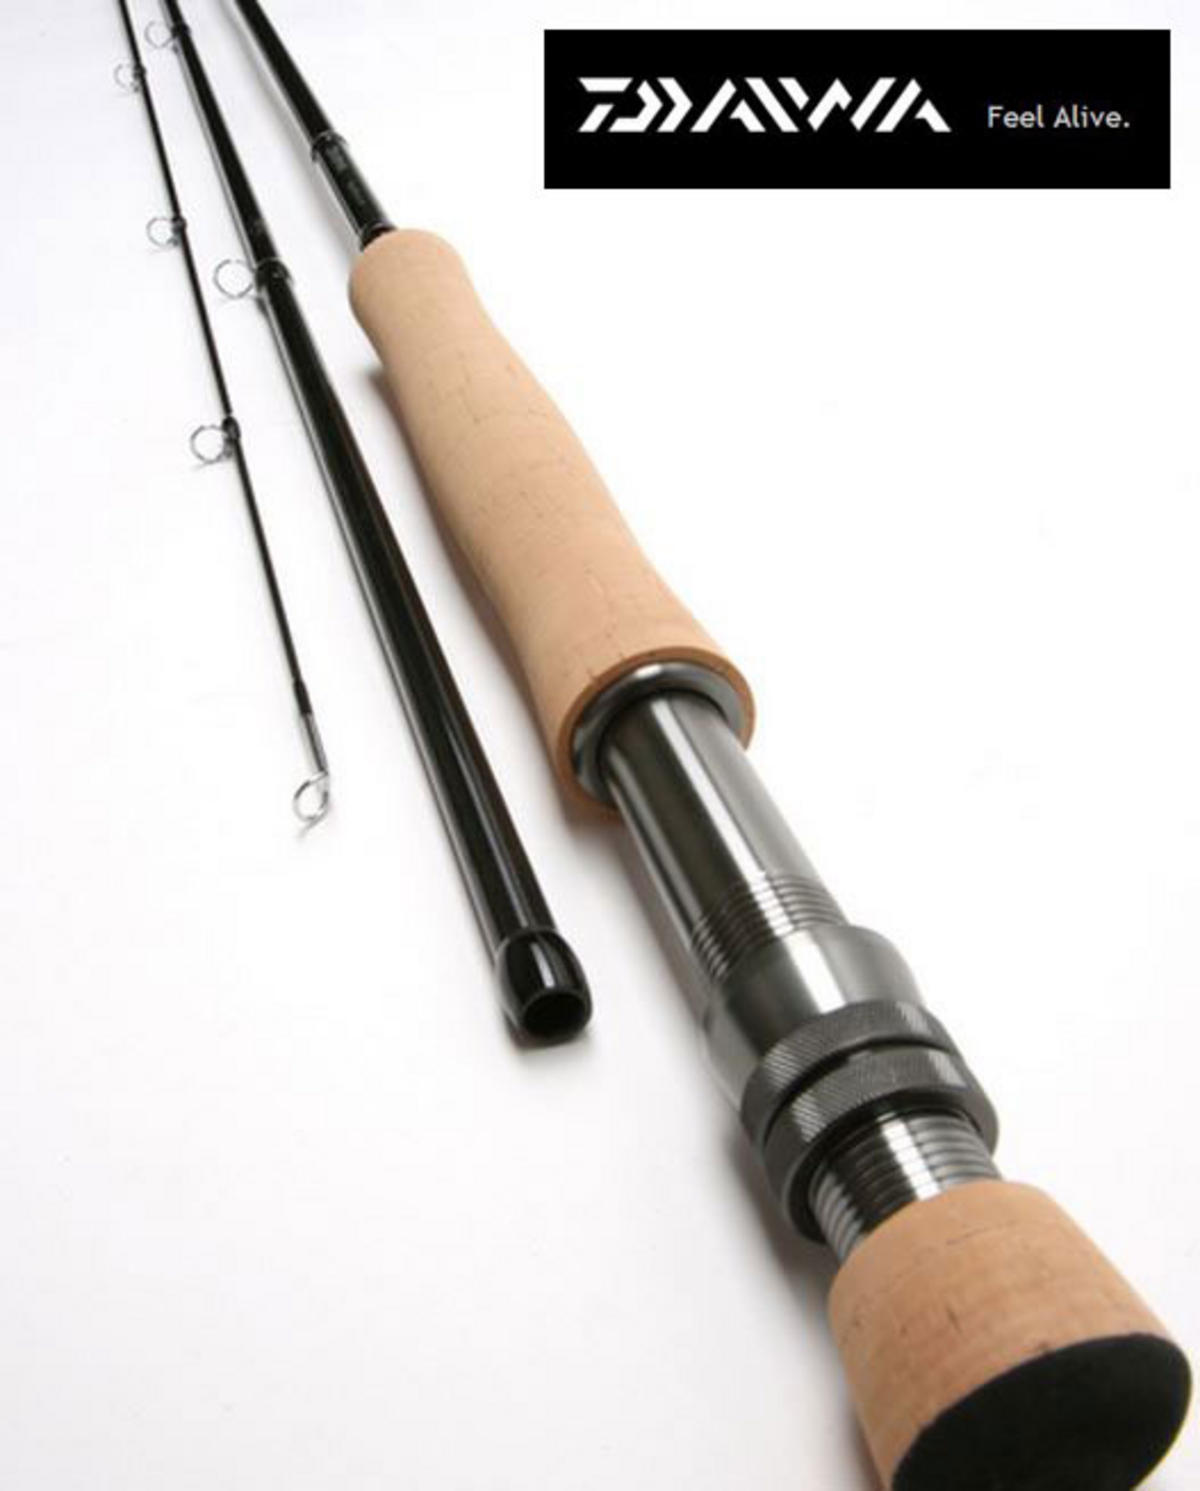 NEW DAIWA TROUT FLY FISHING RODS ALL MODELS AVAILABLE